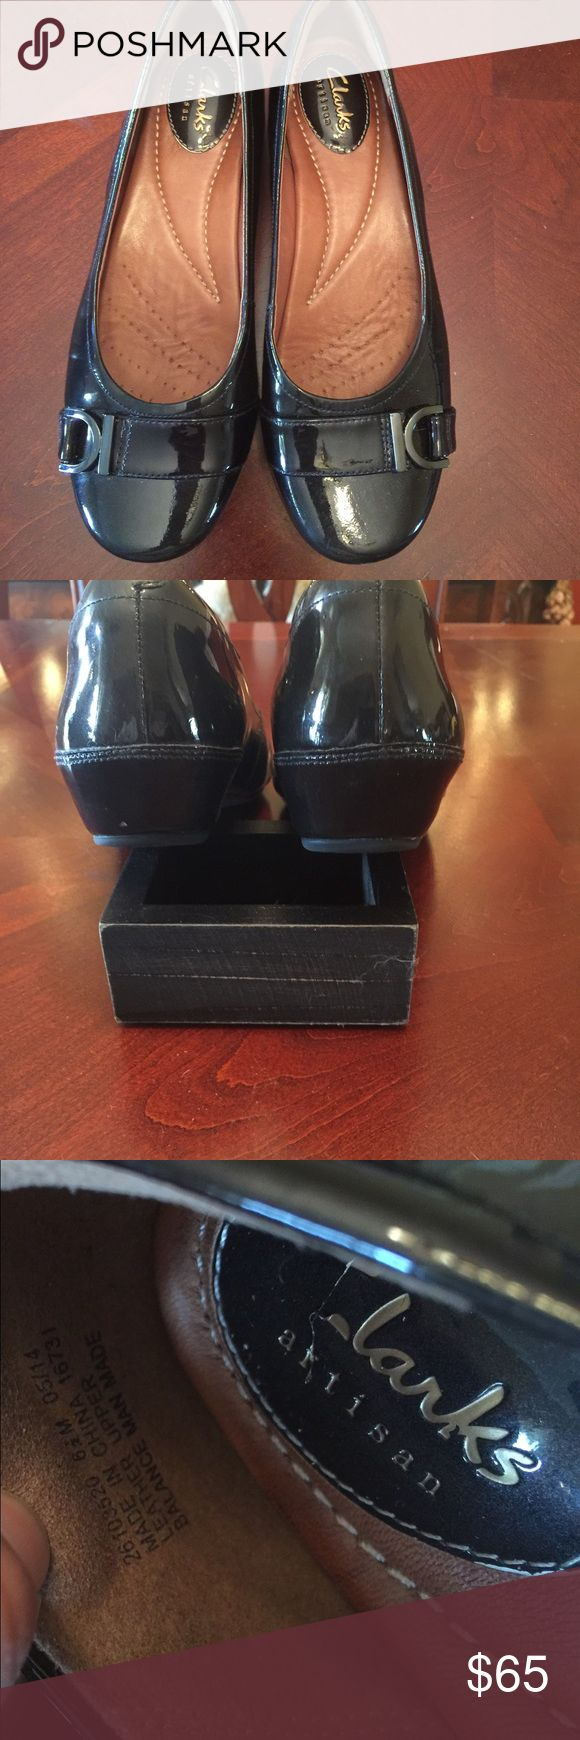 Clark Black Patent Shoes, size 6.5 Woman's leather upper ballet flat man made from Clarks®. Worn a few times. Soft cushioned soles.  One heal has a tiny knick as shown in photo. Smoke free home.  Excellent condition. Clarks Shoes Flats & Loafers